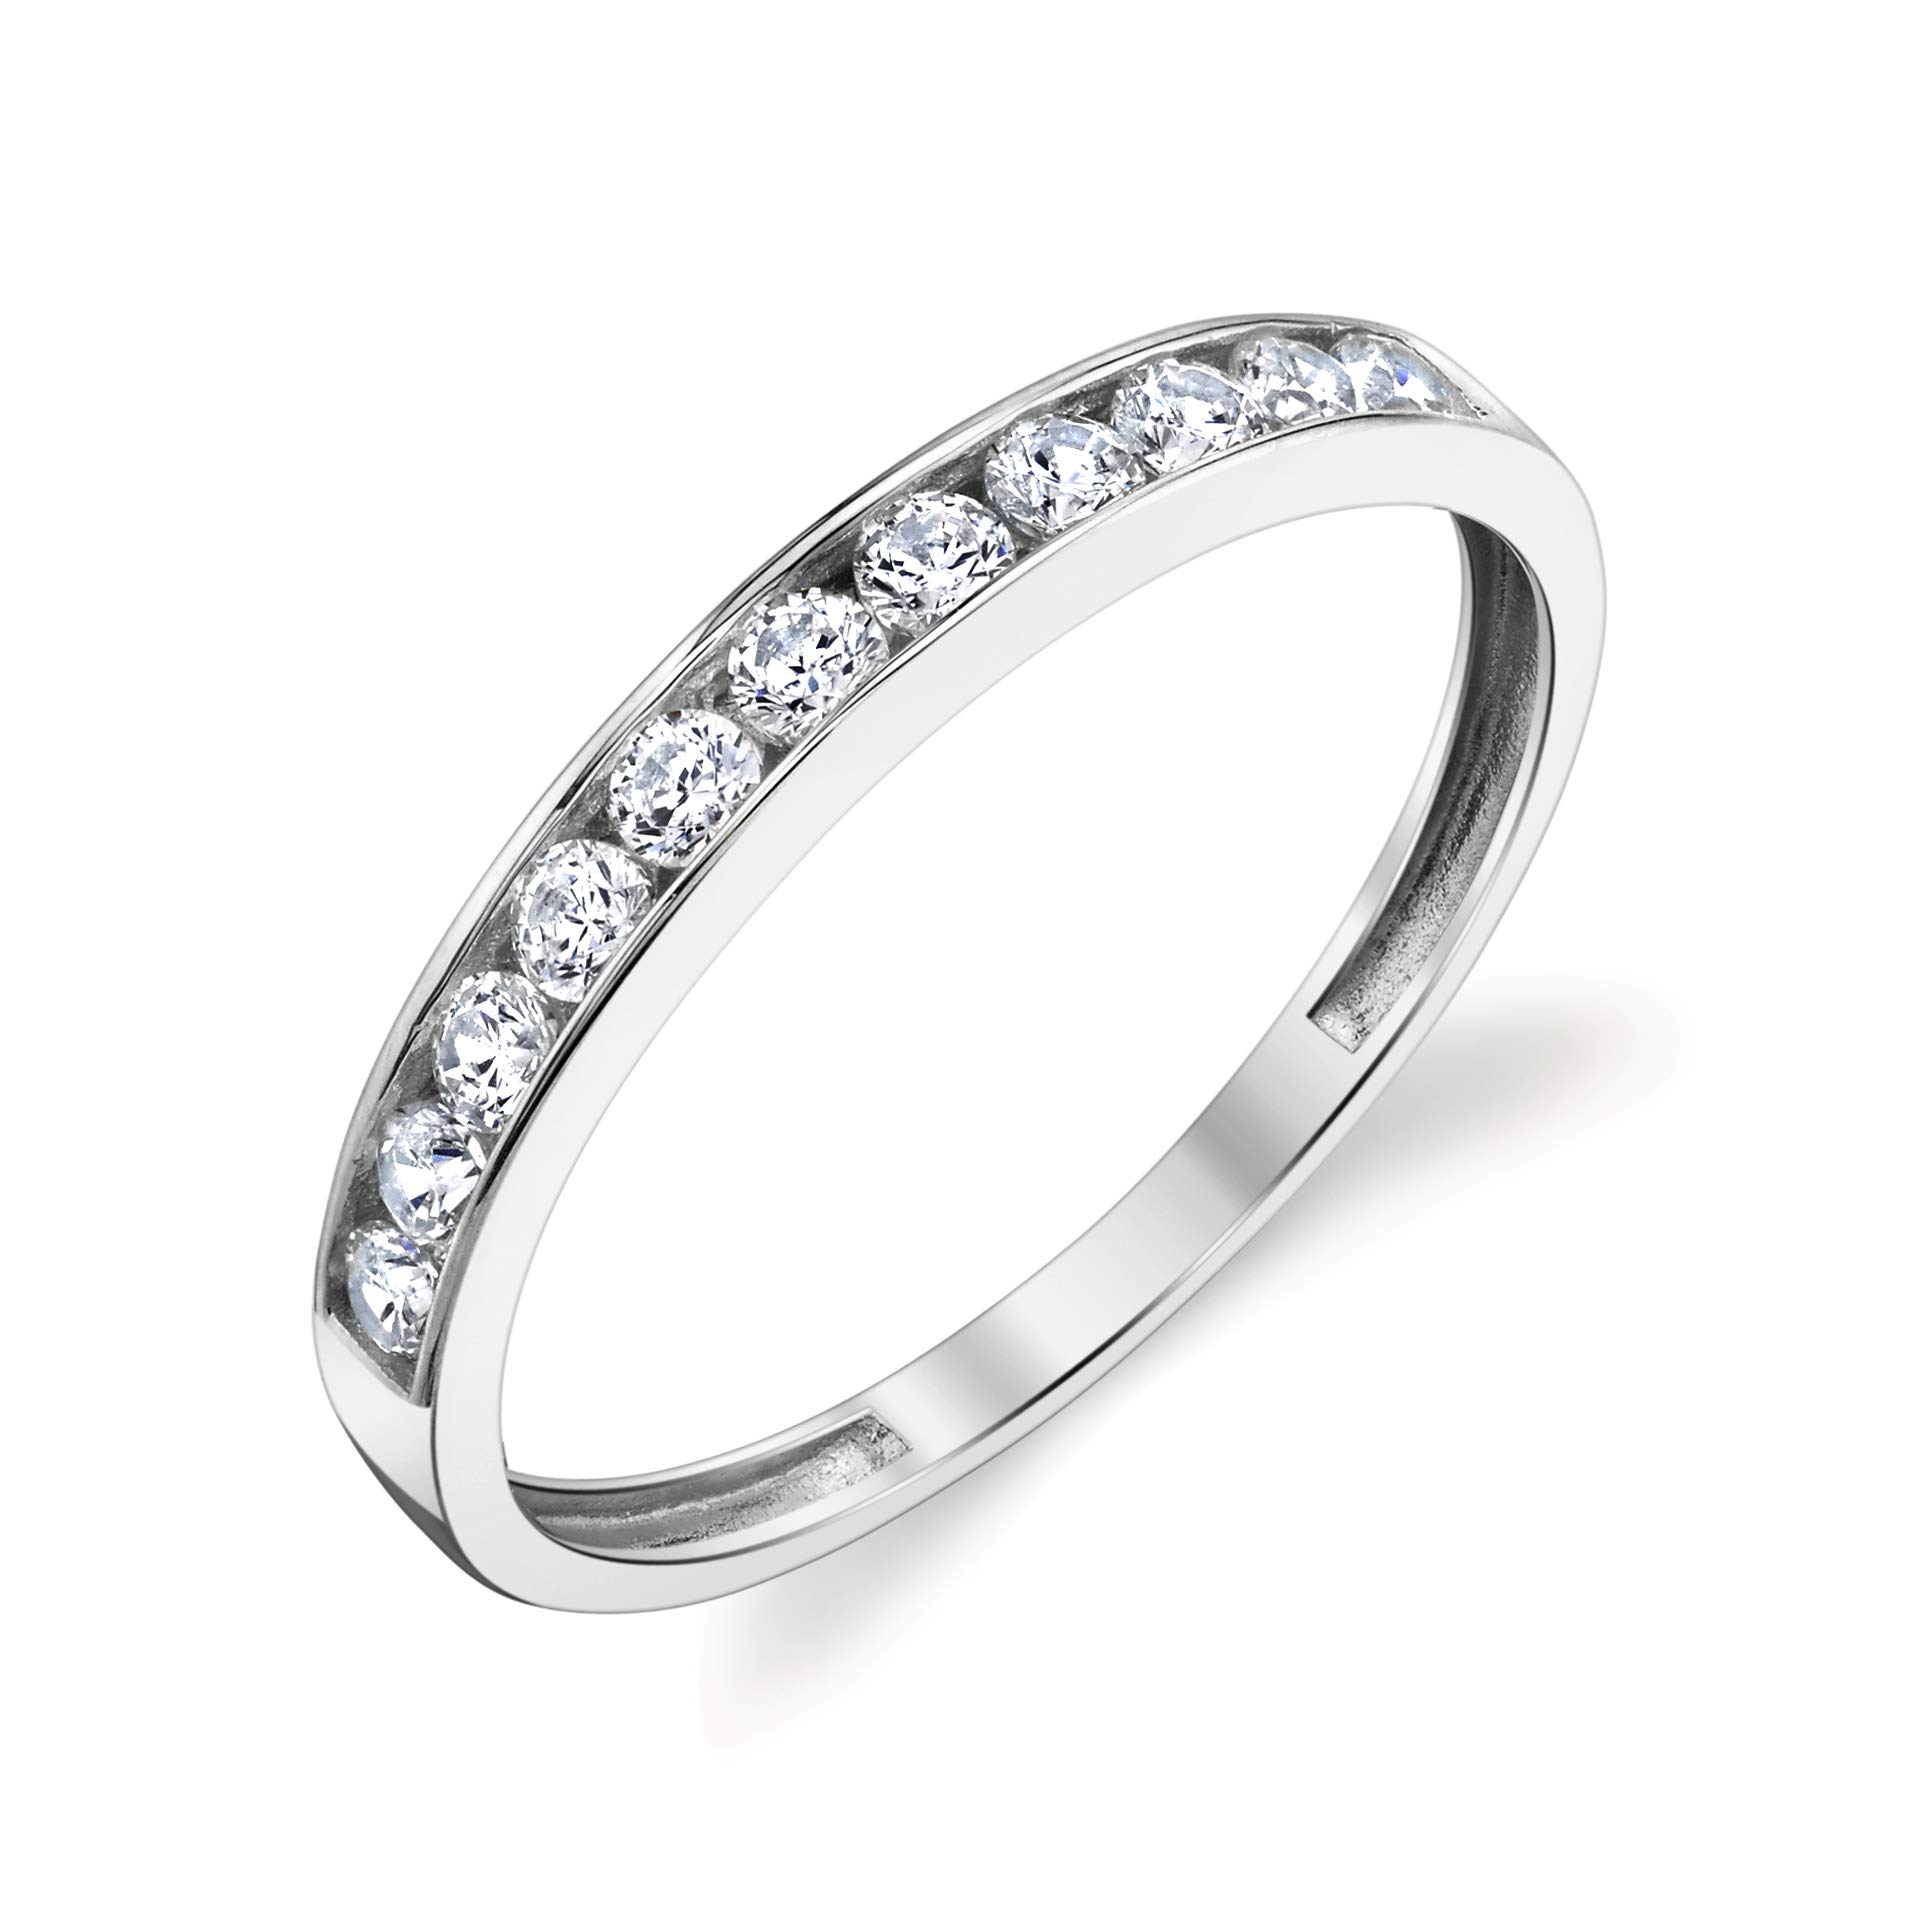 Tesori & Co 10k Solid White Gold Channel Wedding Band Ring Size 8